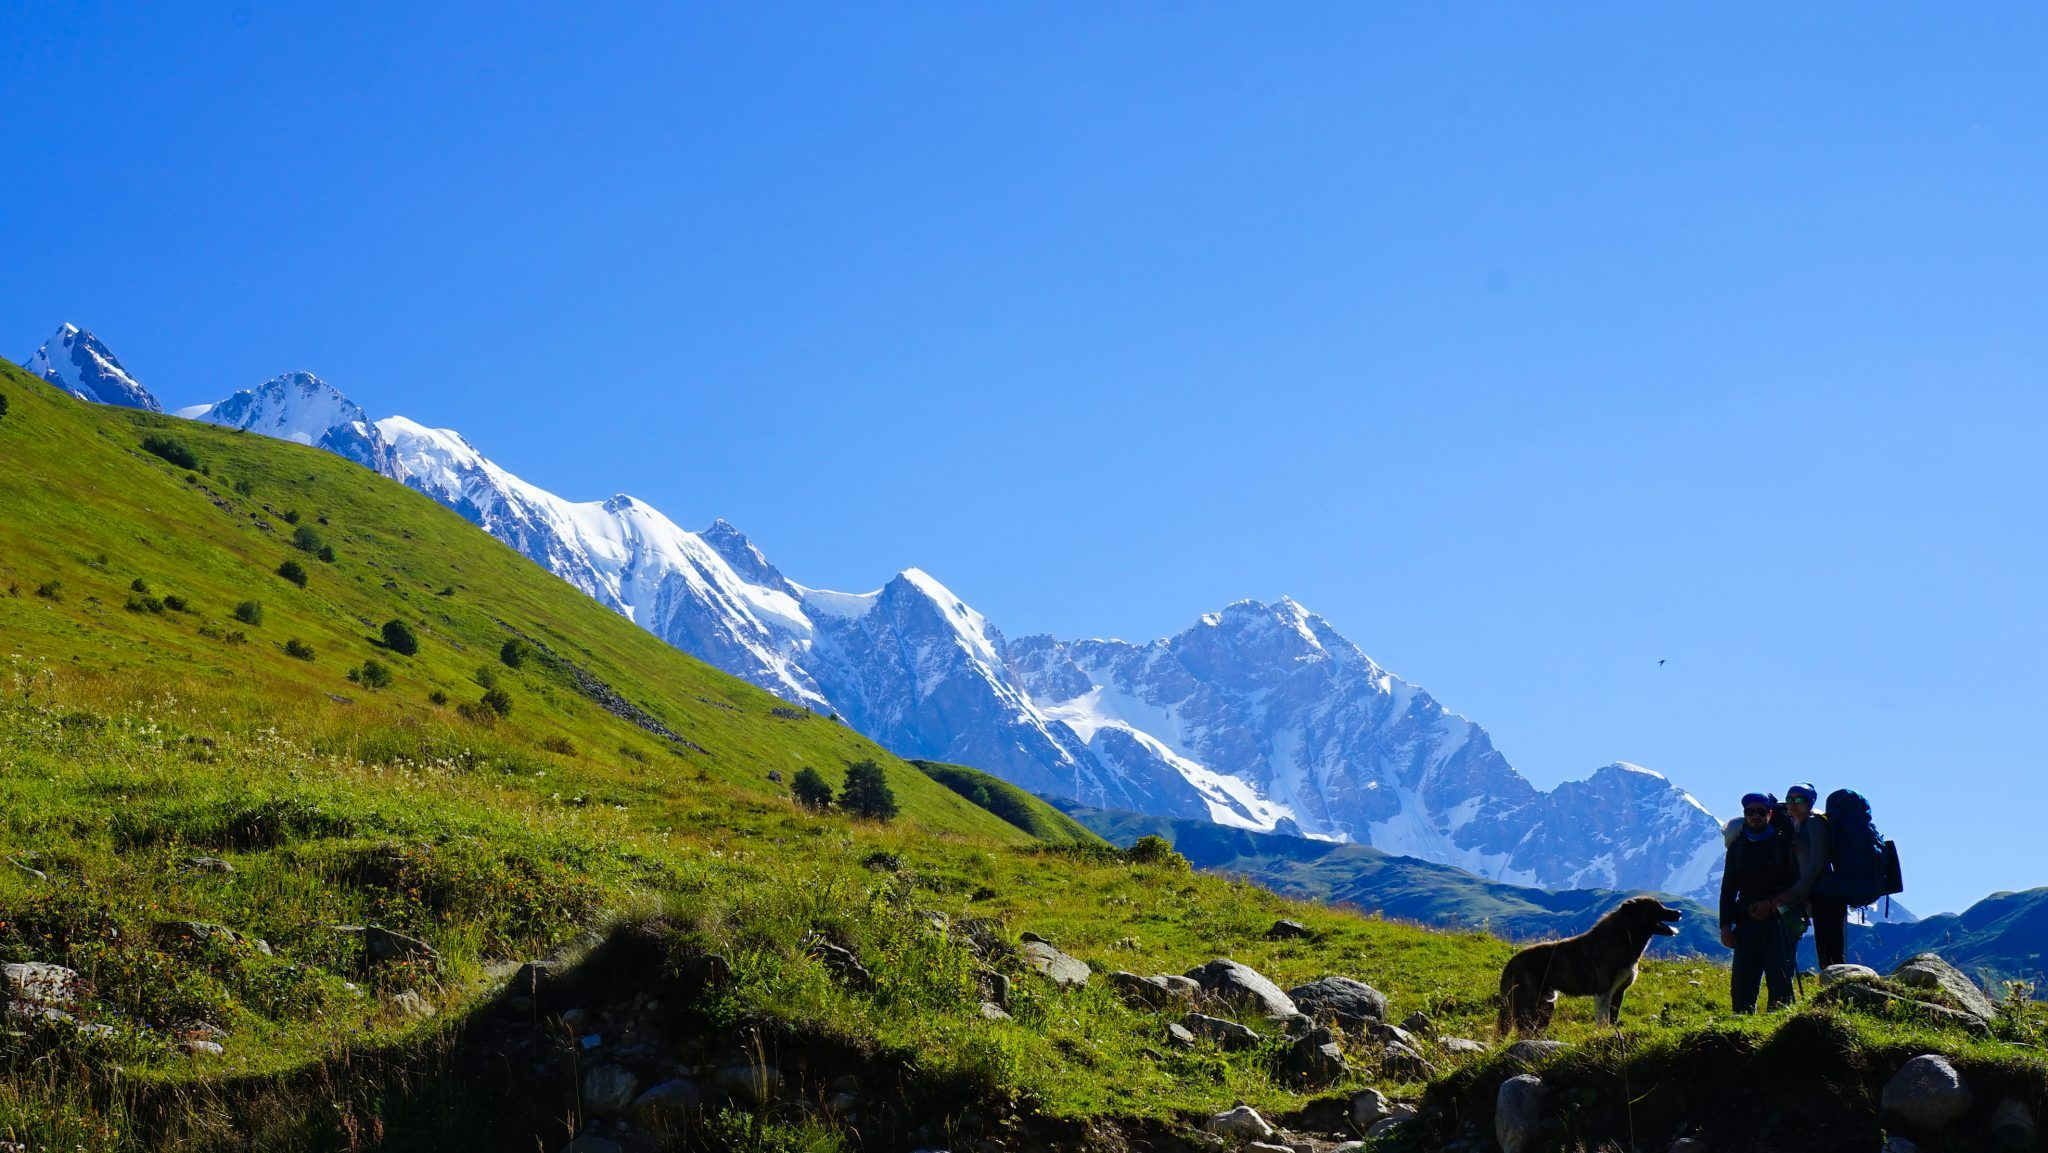 Guide To Svaneti Trekking A Highly Rewarding And Easy 3 Day